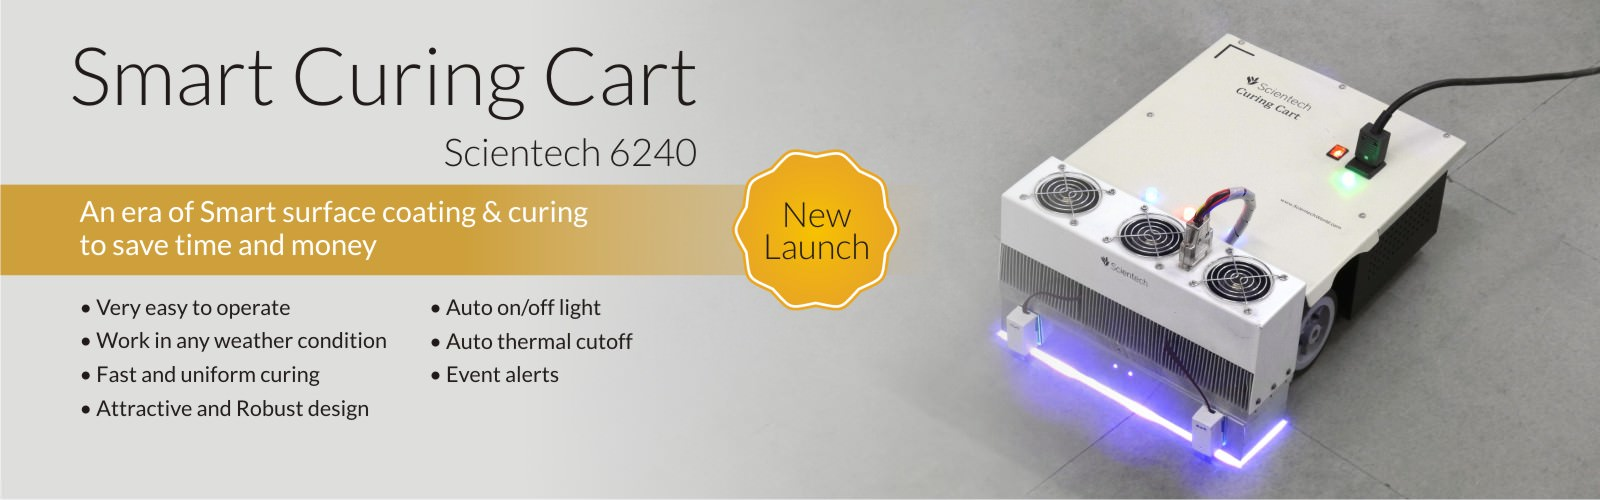 Scientech Smart Curing Cart